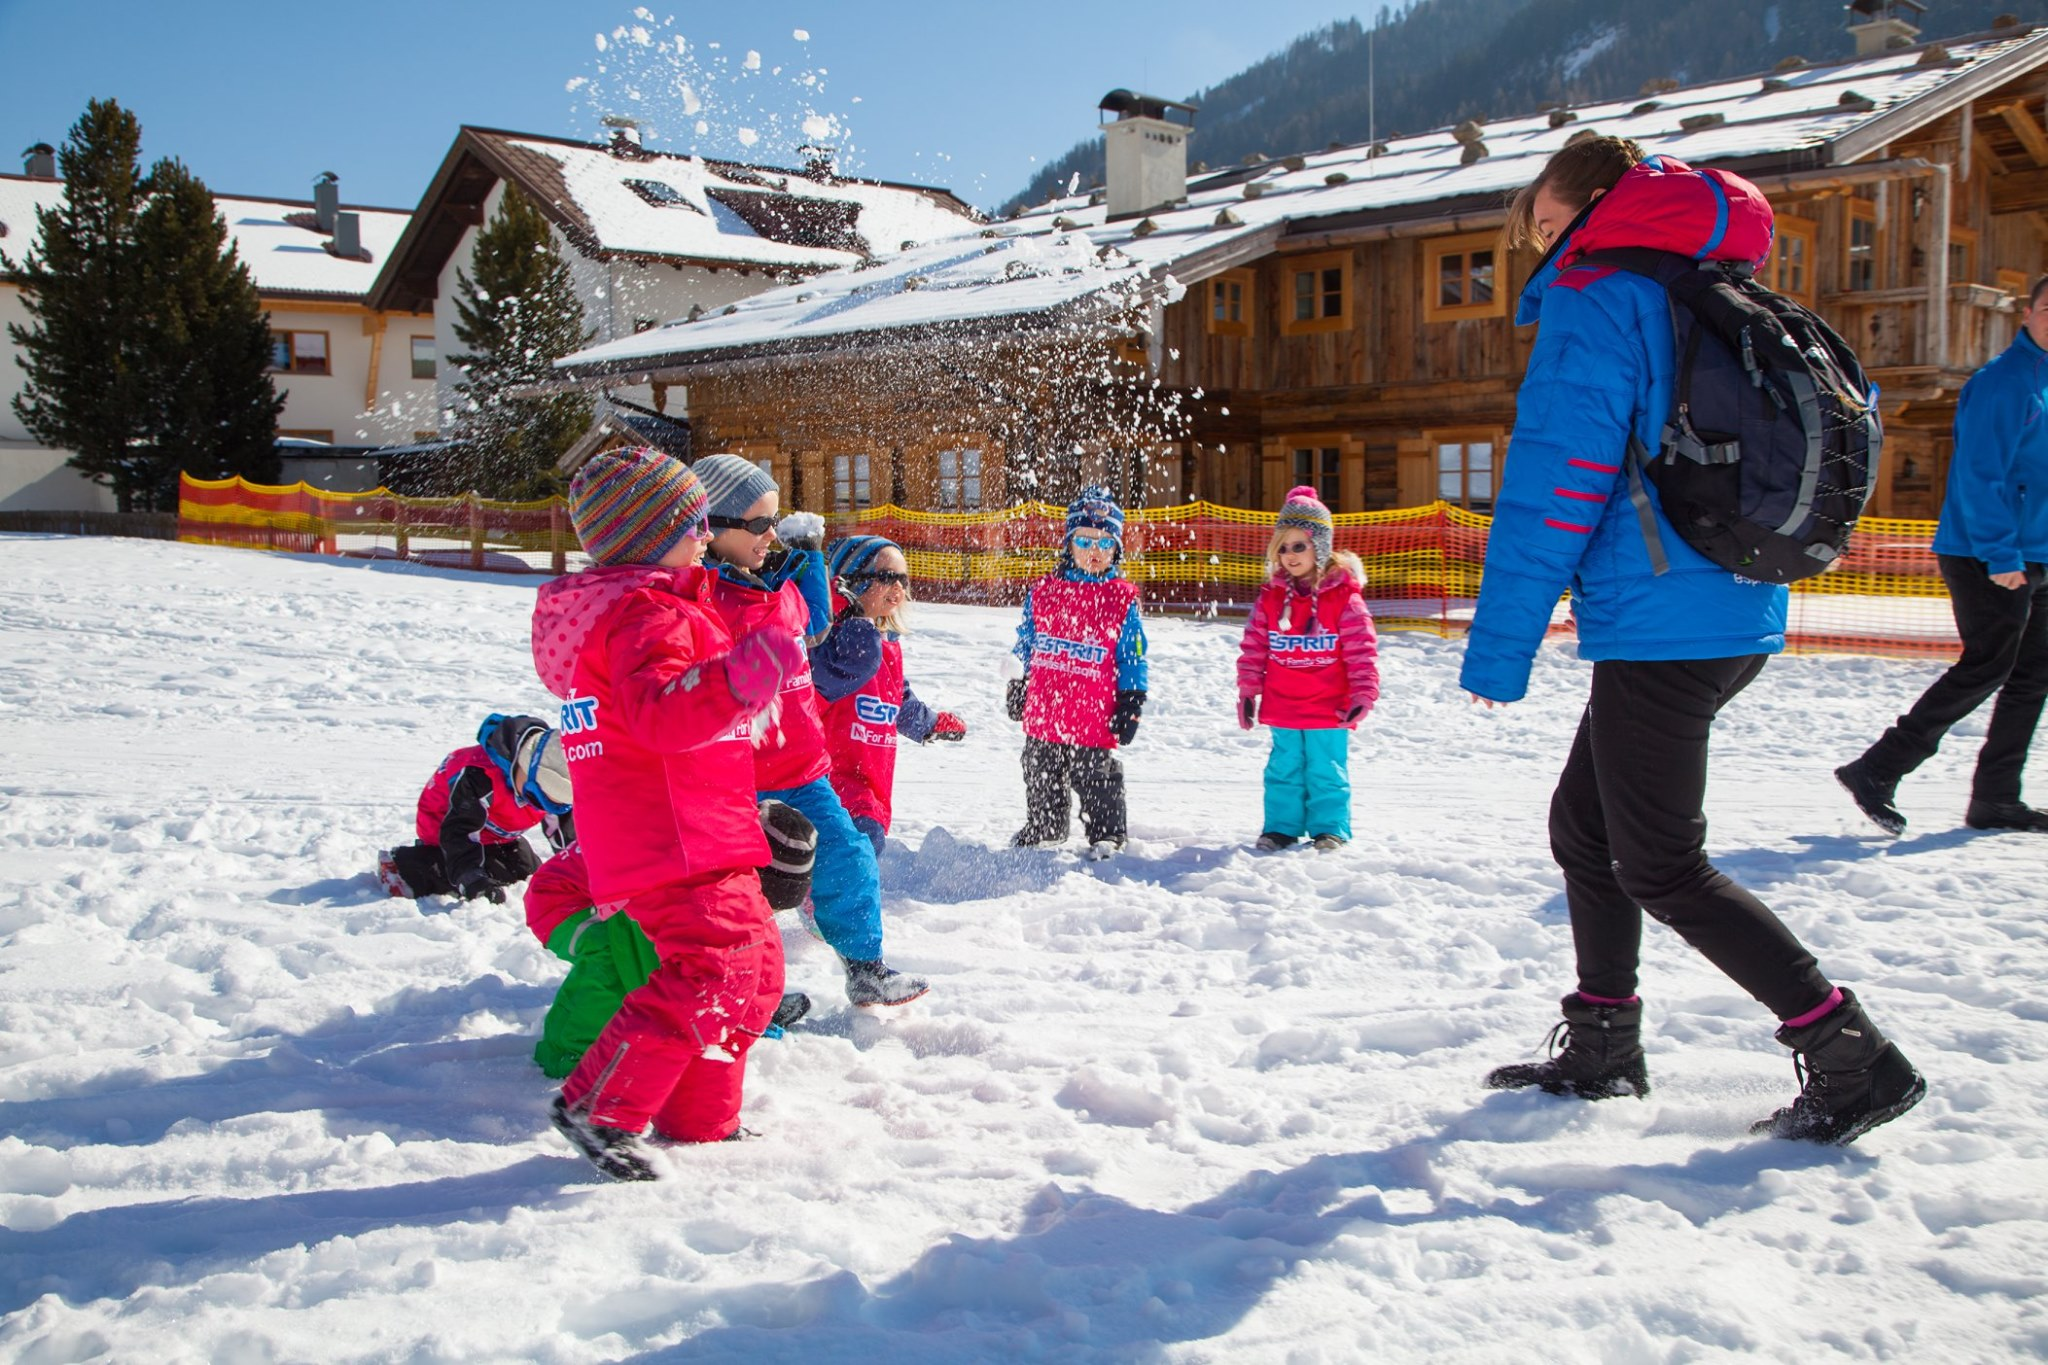 6 preschoolers dressed in pink overcoats, hats and sunglasses throwing snowballs in the snow towards an adult in a blue coat, black leggings and ski boots